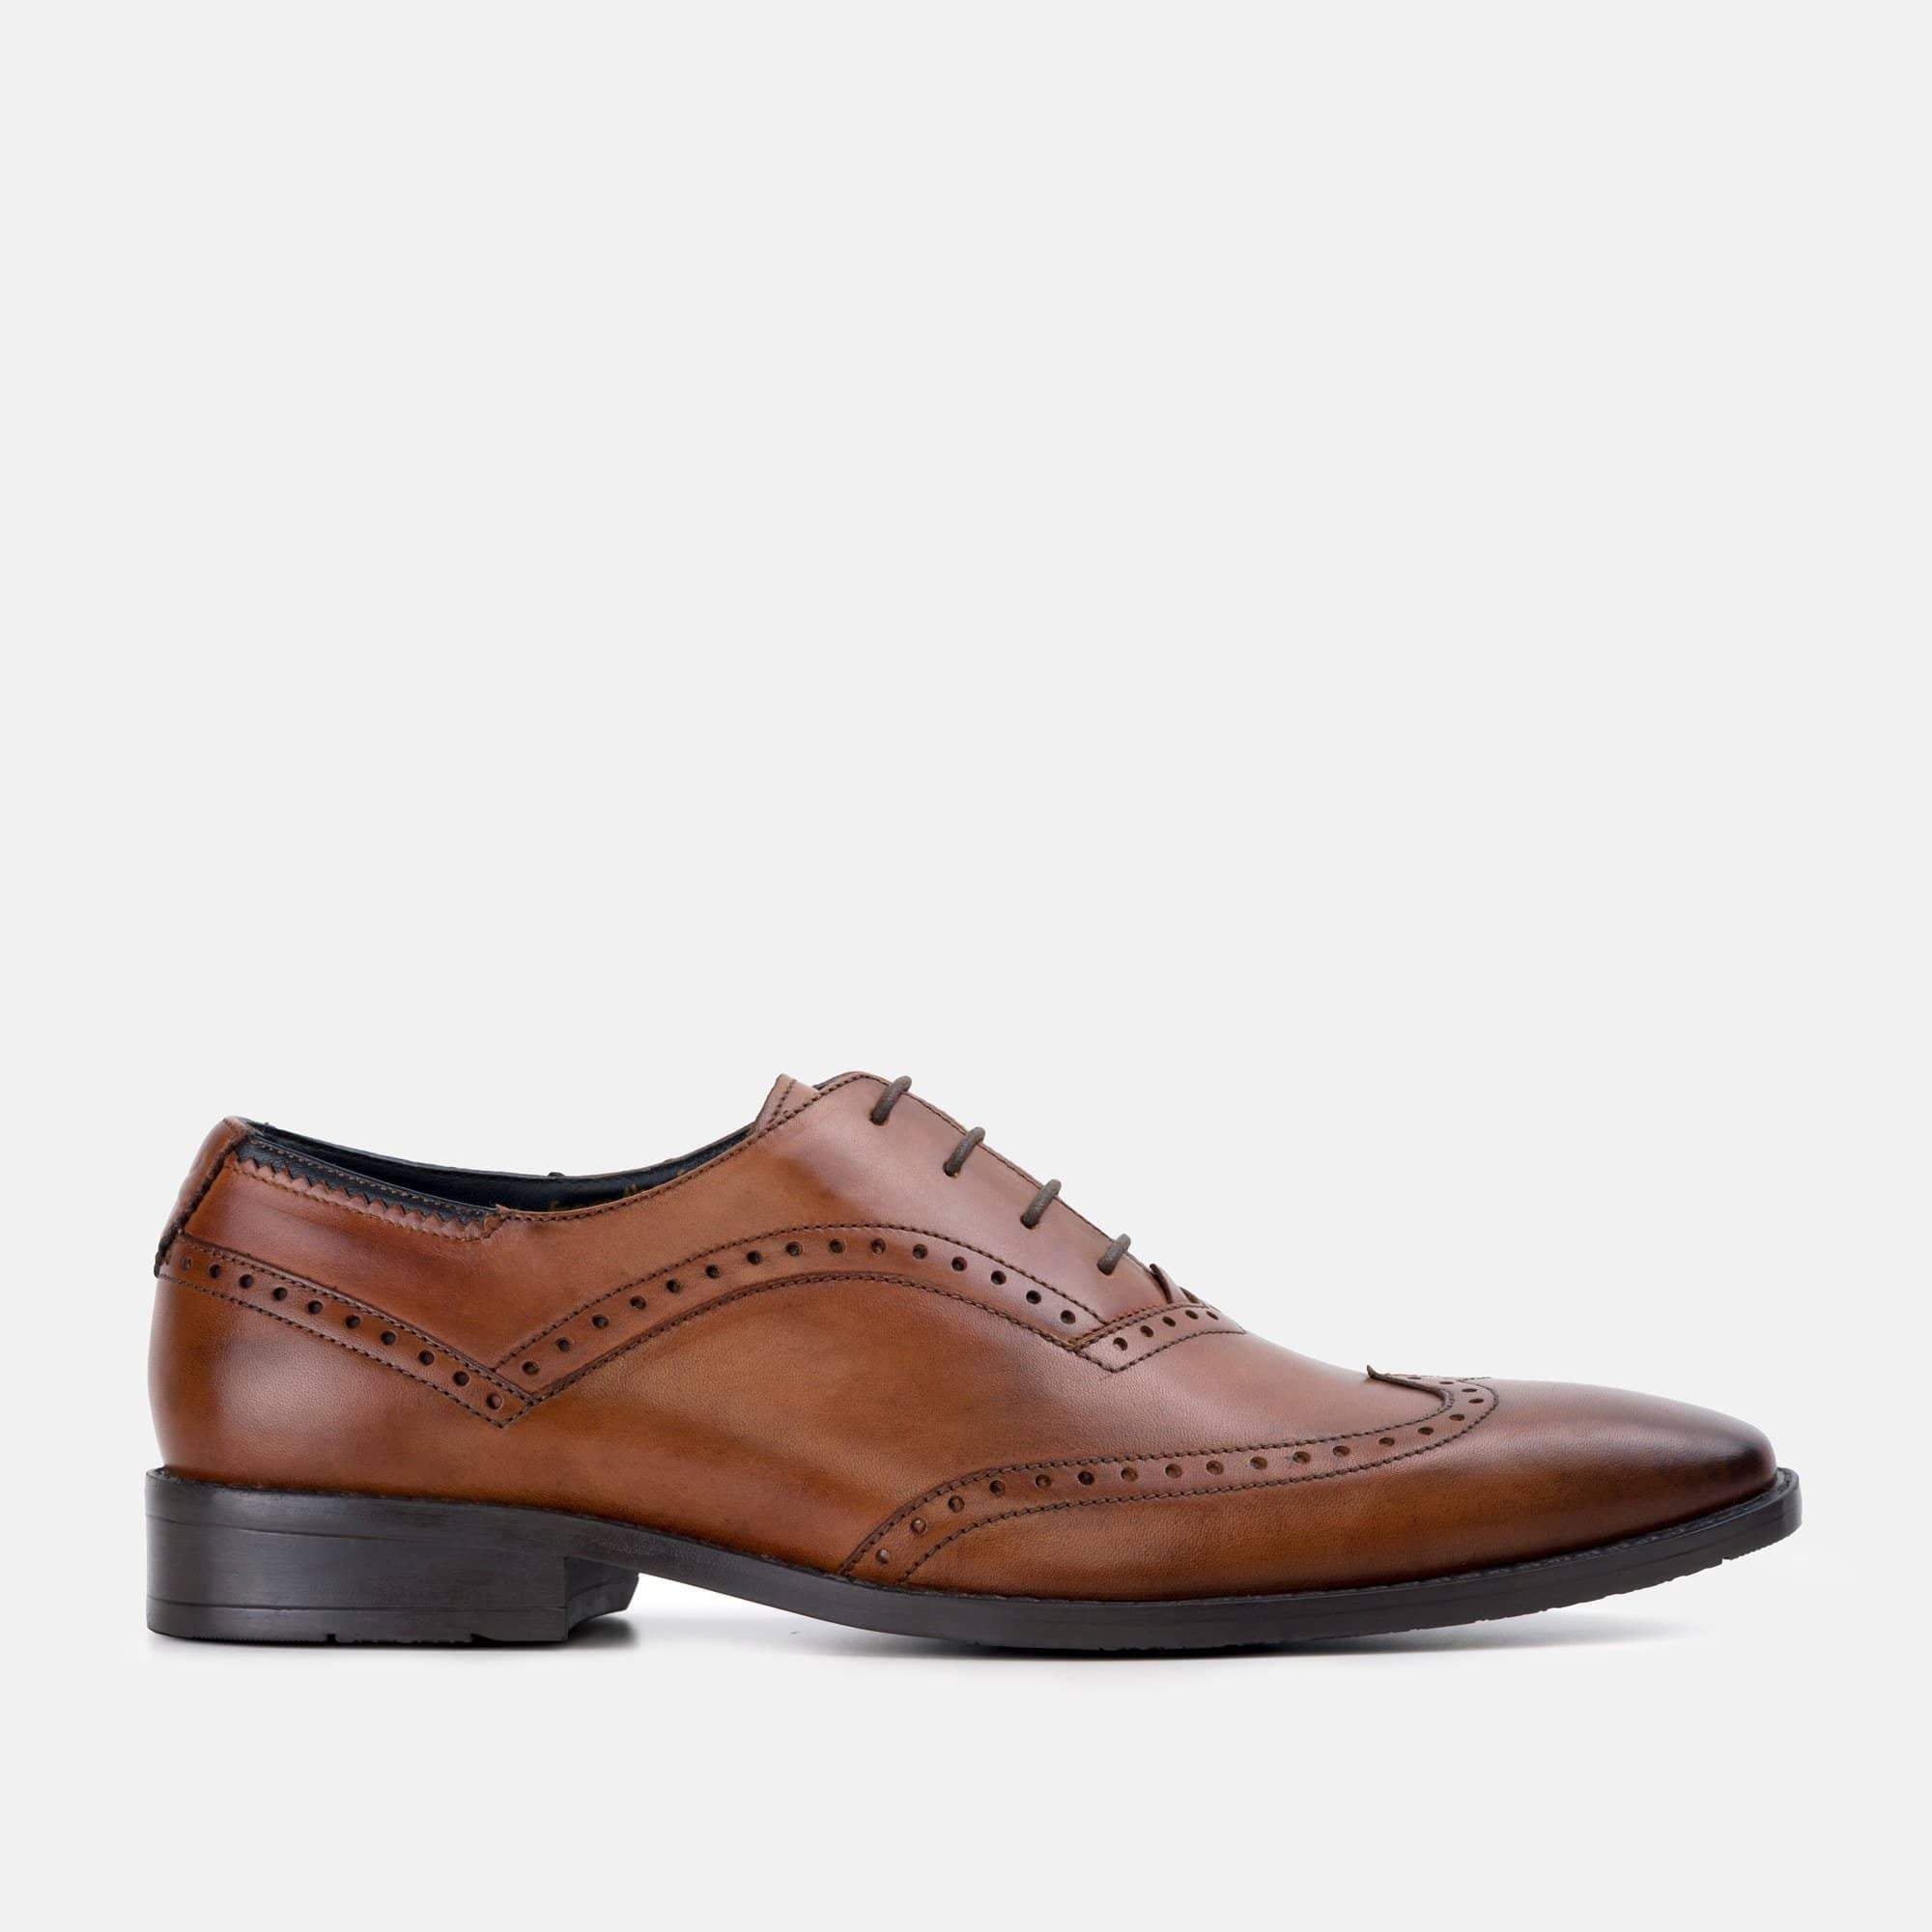 Goodwin Smith Footwear Albany Tan Winged Toe Oxford Leather Shoe